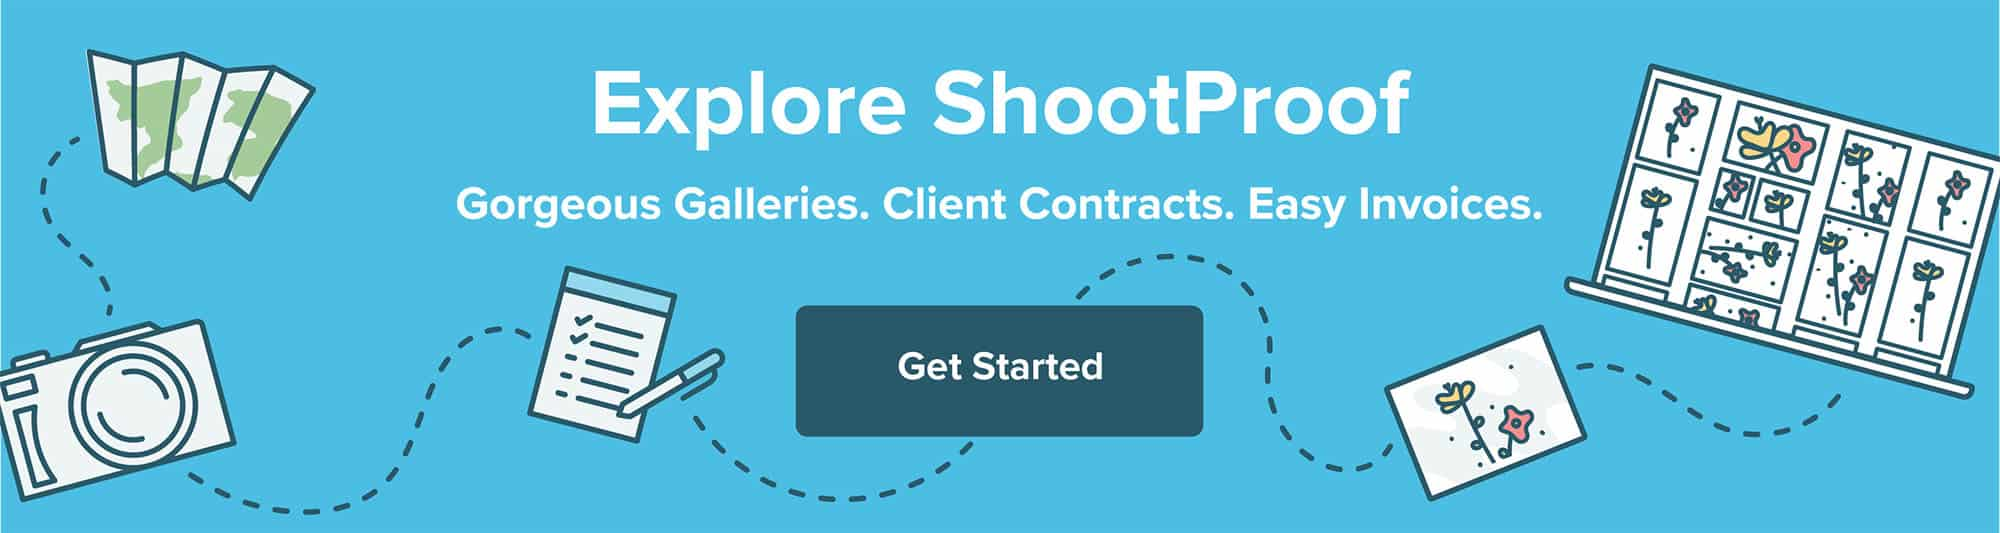 Online Galleries for Photographers - Try FREE!